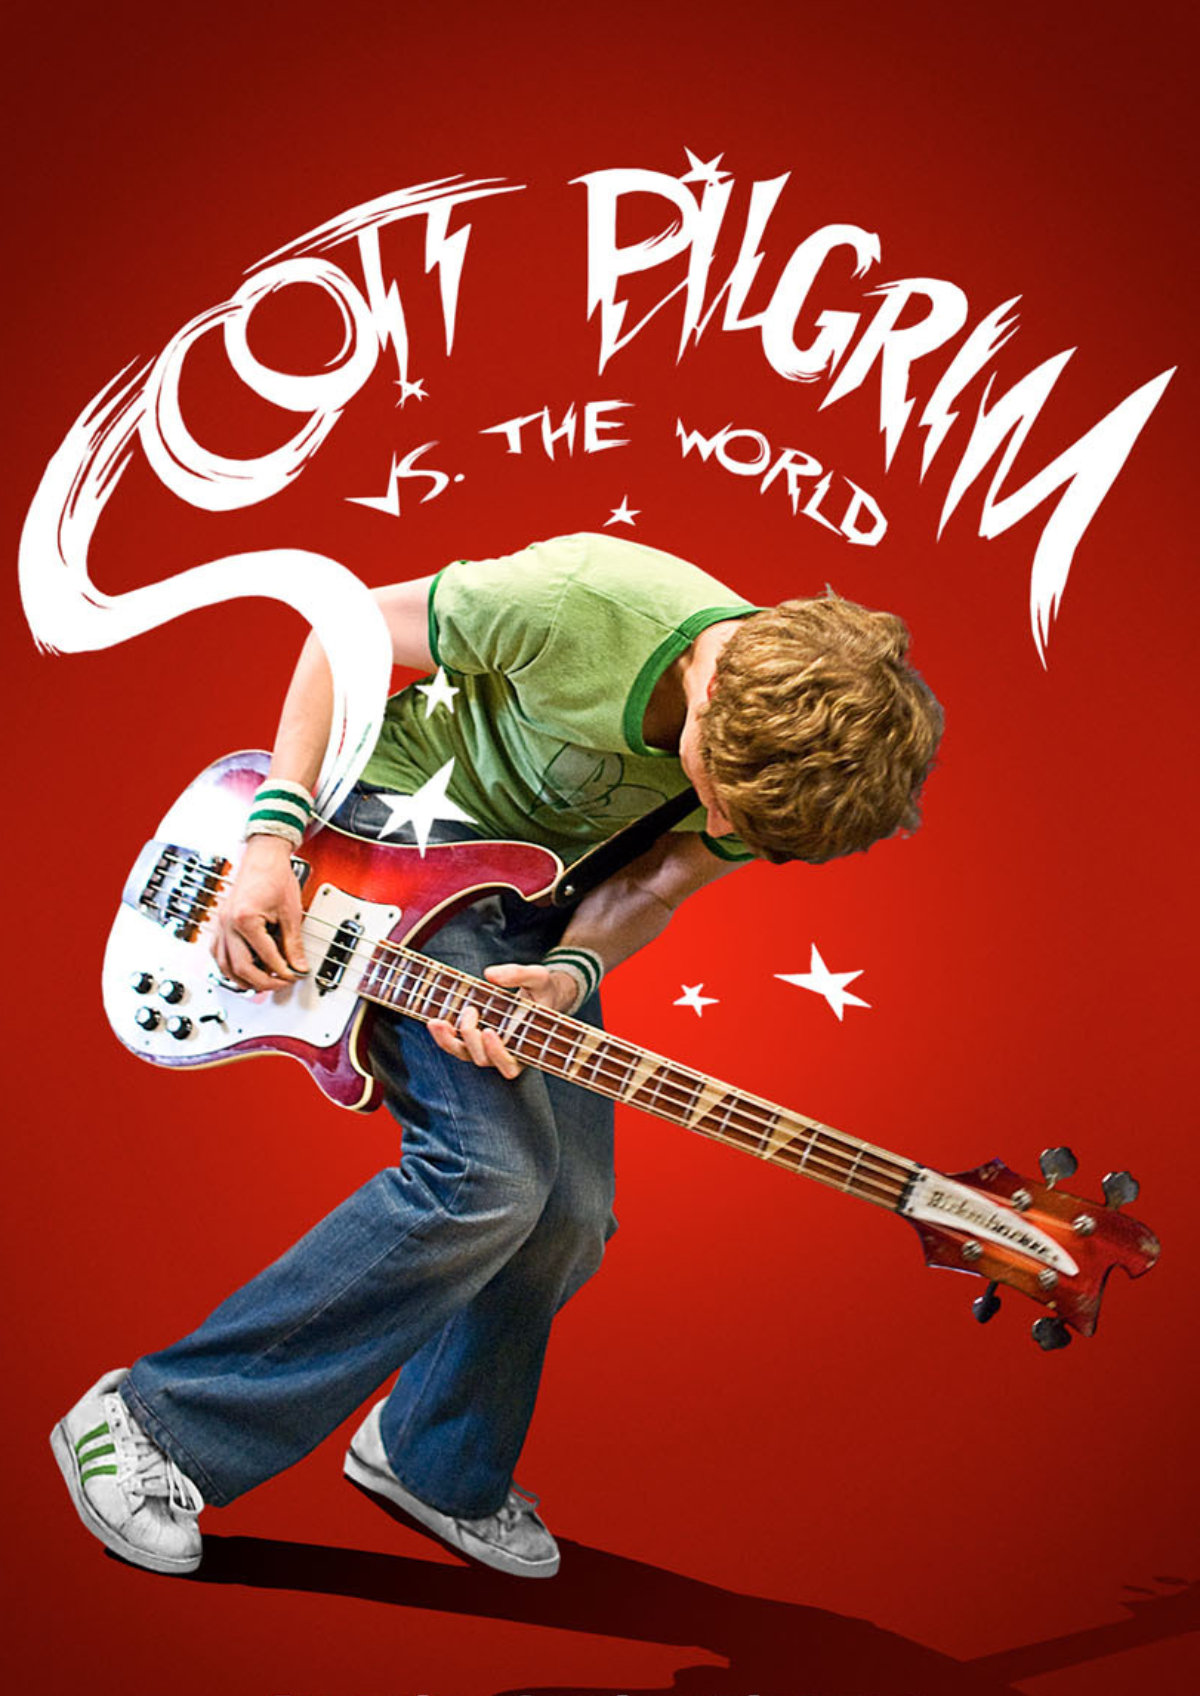 'Scott Pilgrim vs. the World' movie poster